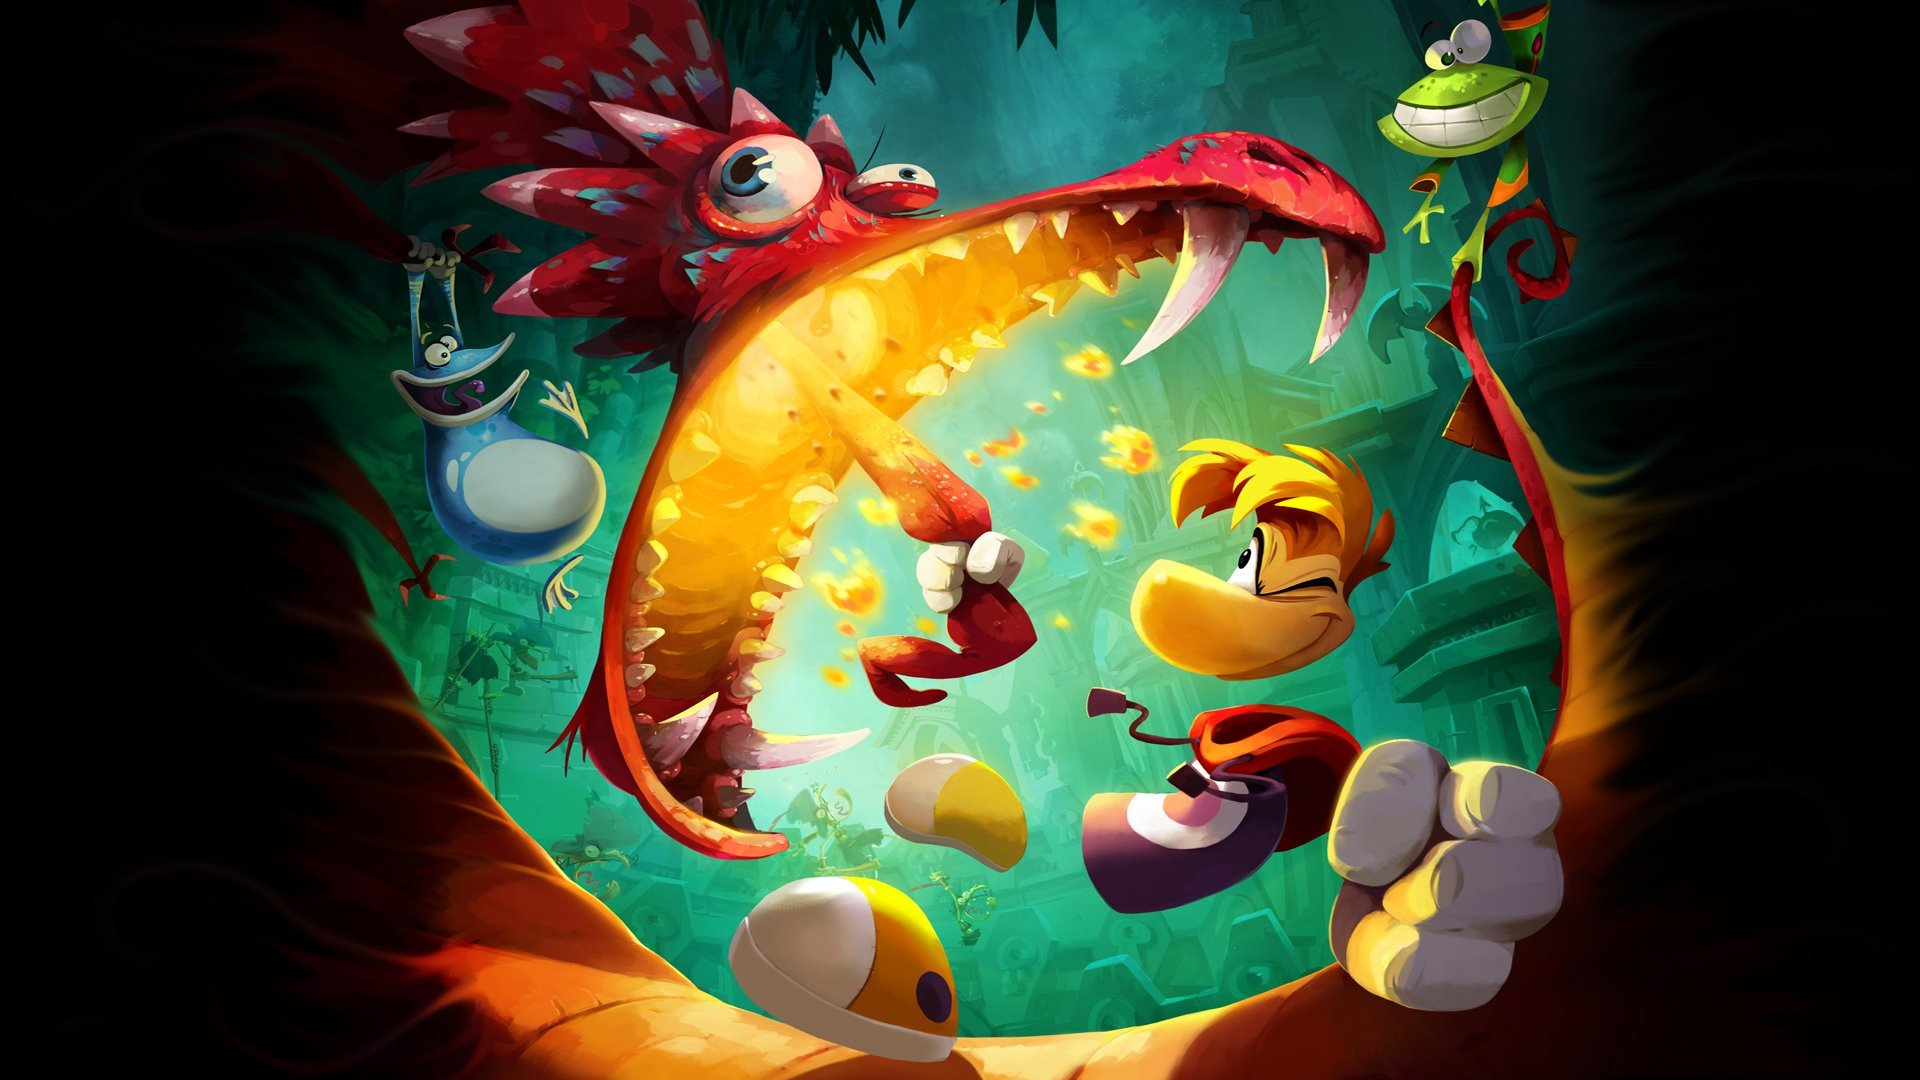 Awesome Rayman Legends free wallpaper ID:26525 for full hd 1920x1080 computer